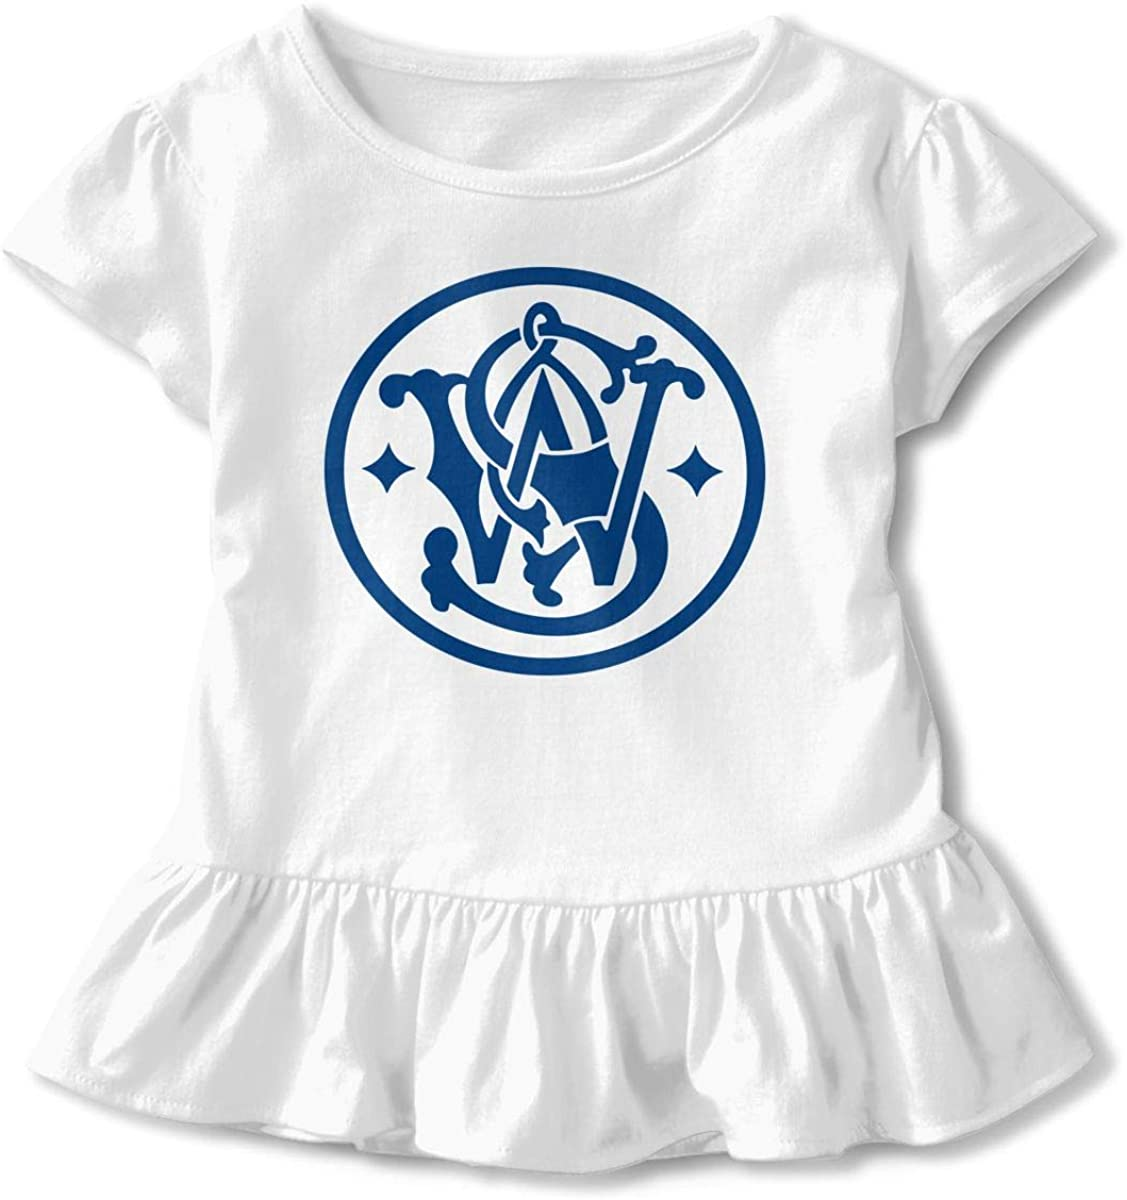 Kids Smith and Wesson Logo Toddler Short Sleeve T Shirt Children Girls Cotton Graphic Tee Soft Dress (2-6T)